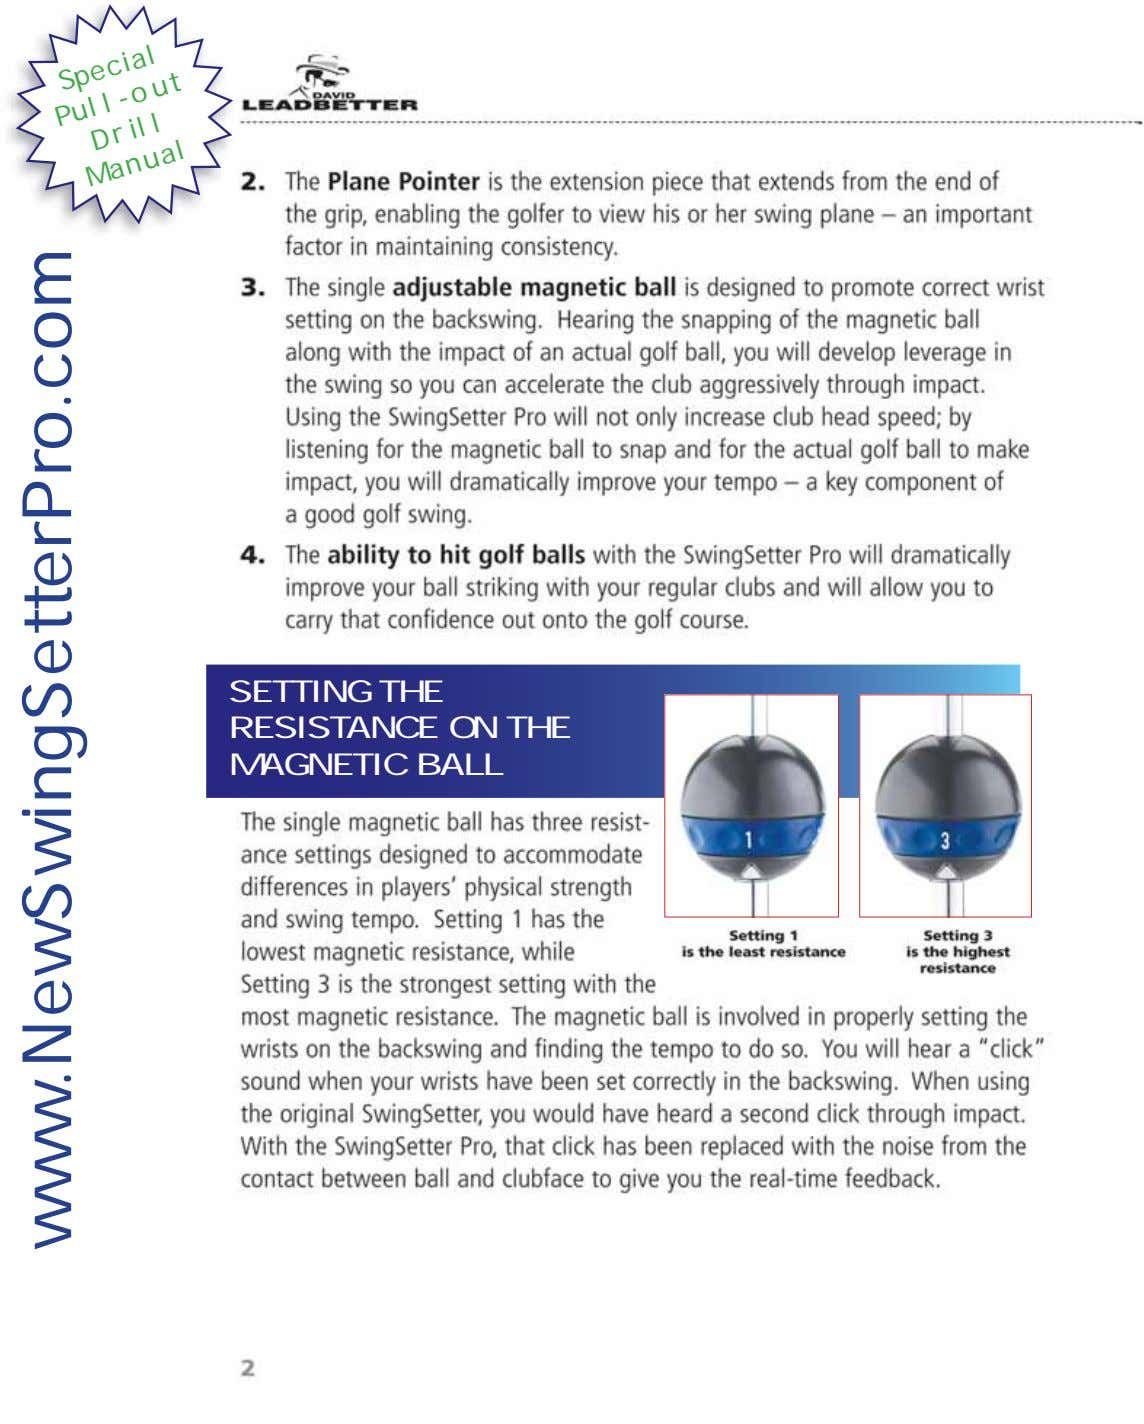 Special Pull-out Drill Manual SETTING THE RESISTANCE ON THE MAGNETIC BALL www.NewSwingSetterPro.com